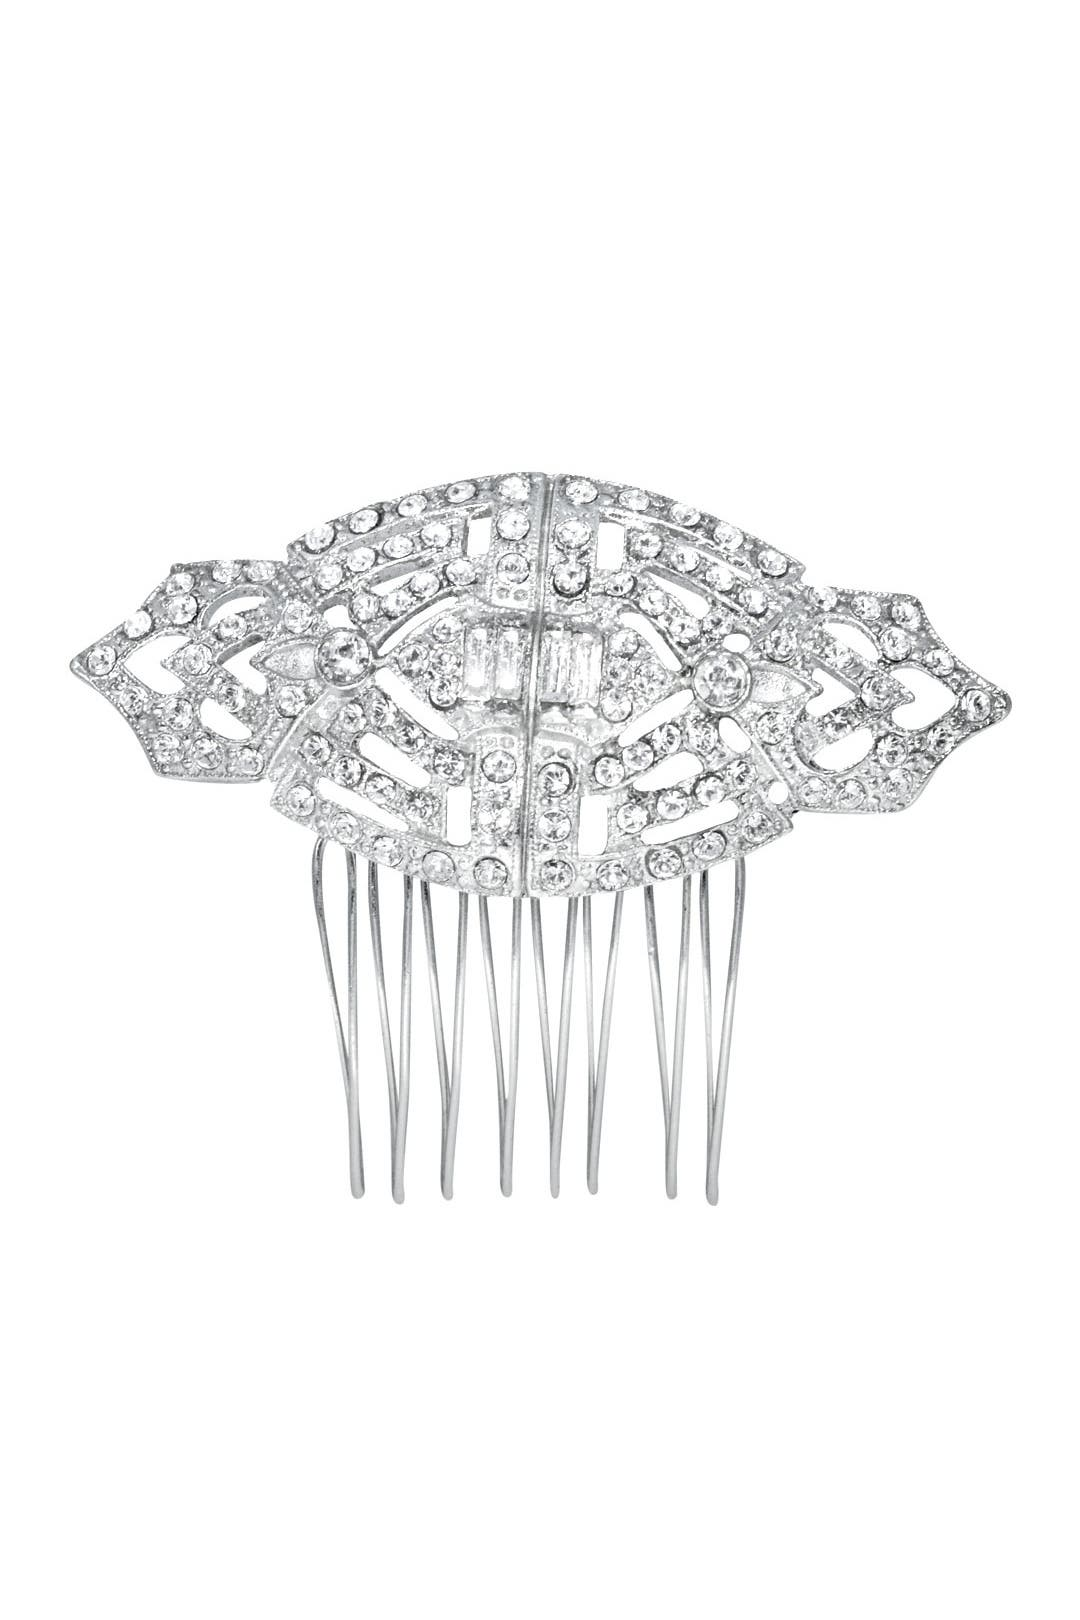 Cut the Cake Comb by RTR Bridal Accessories